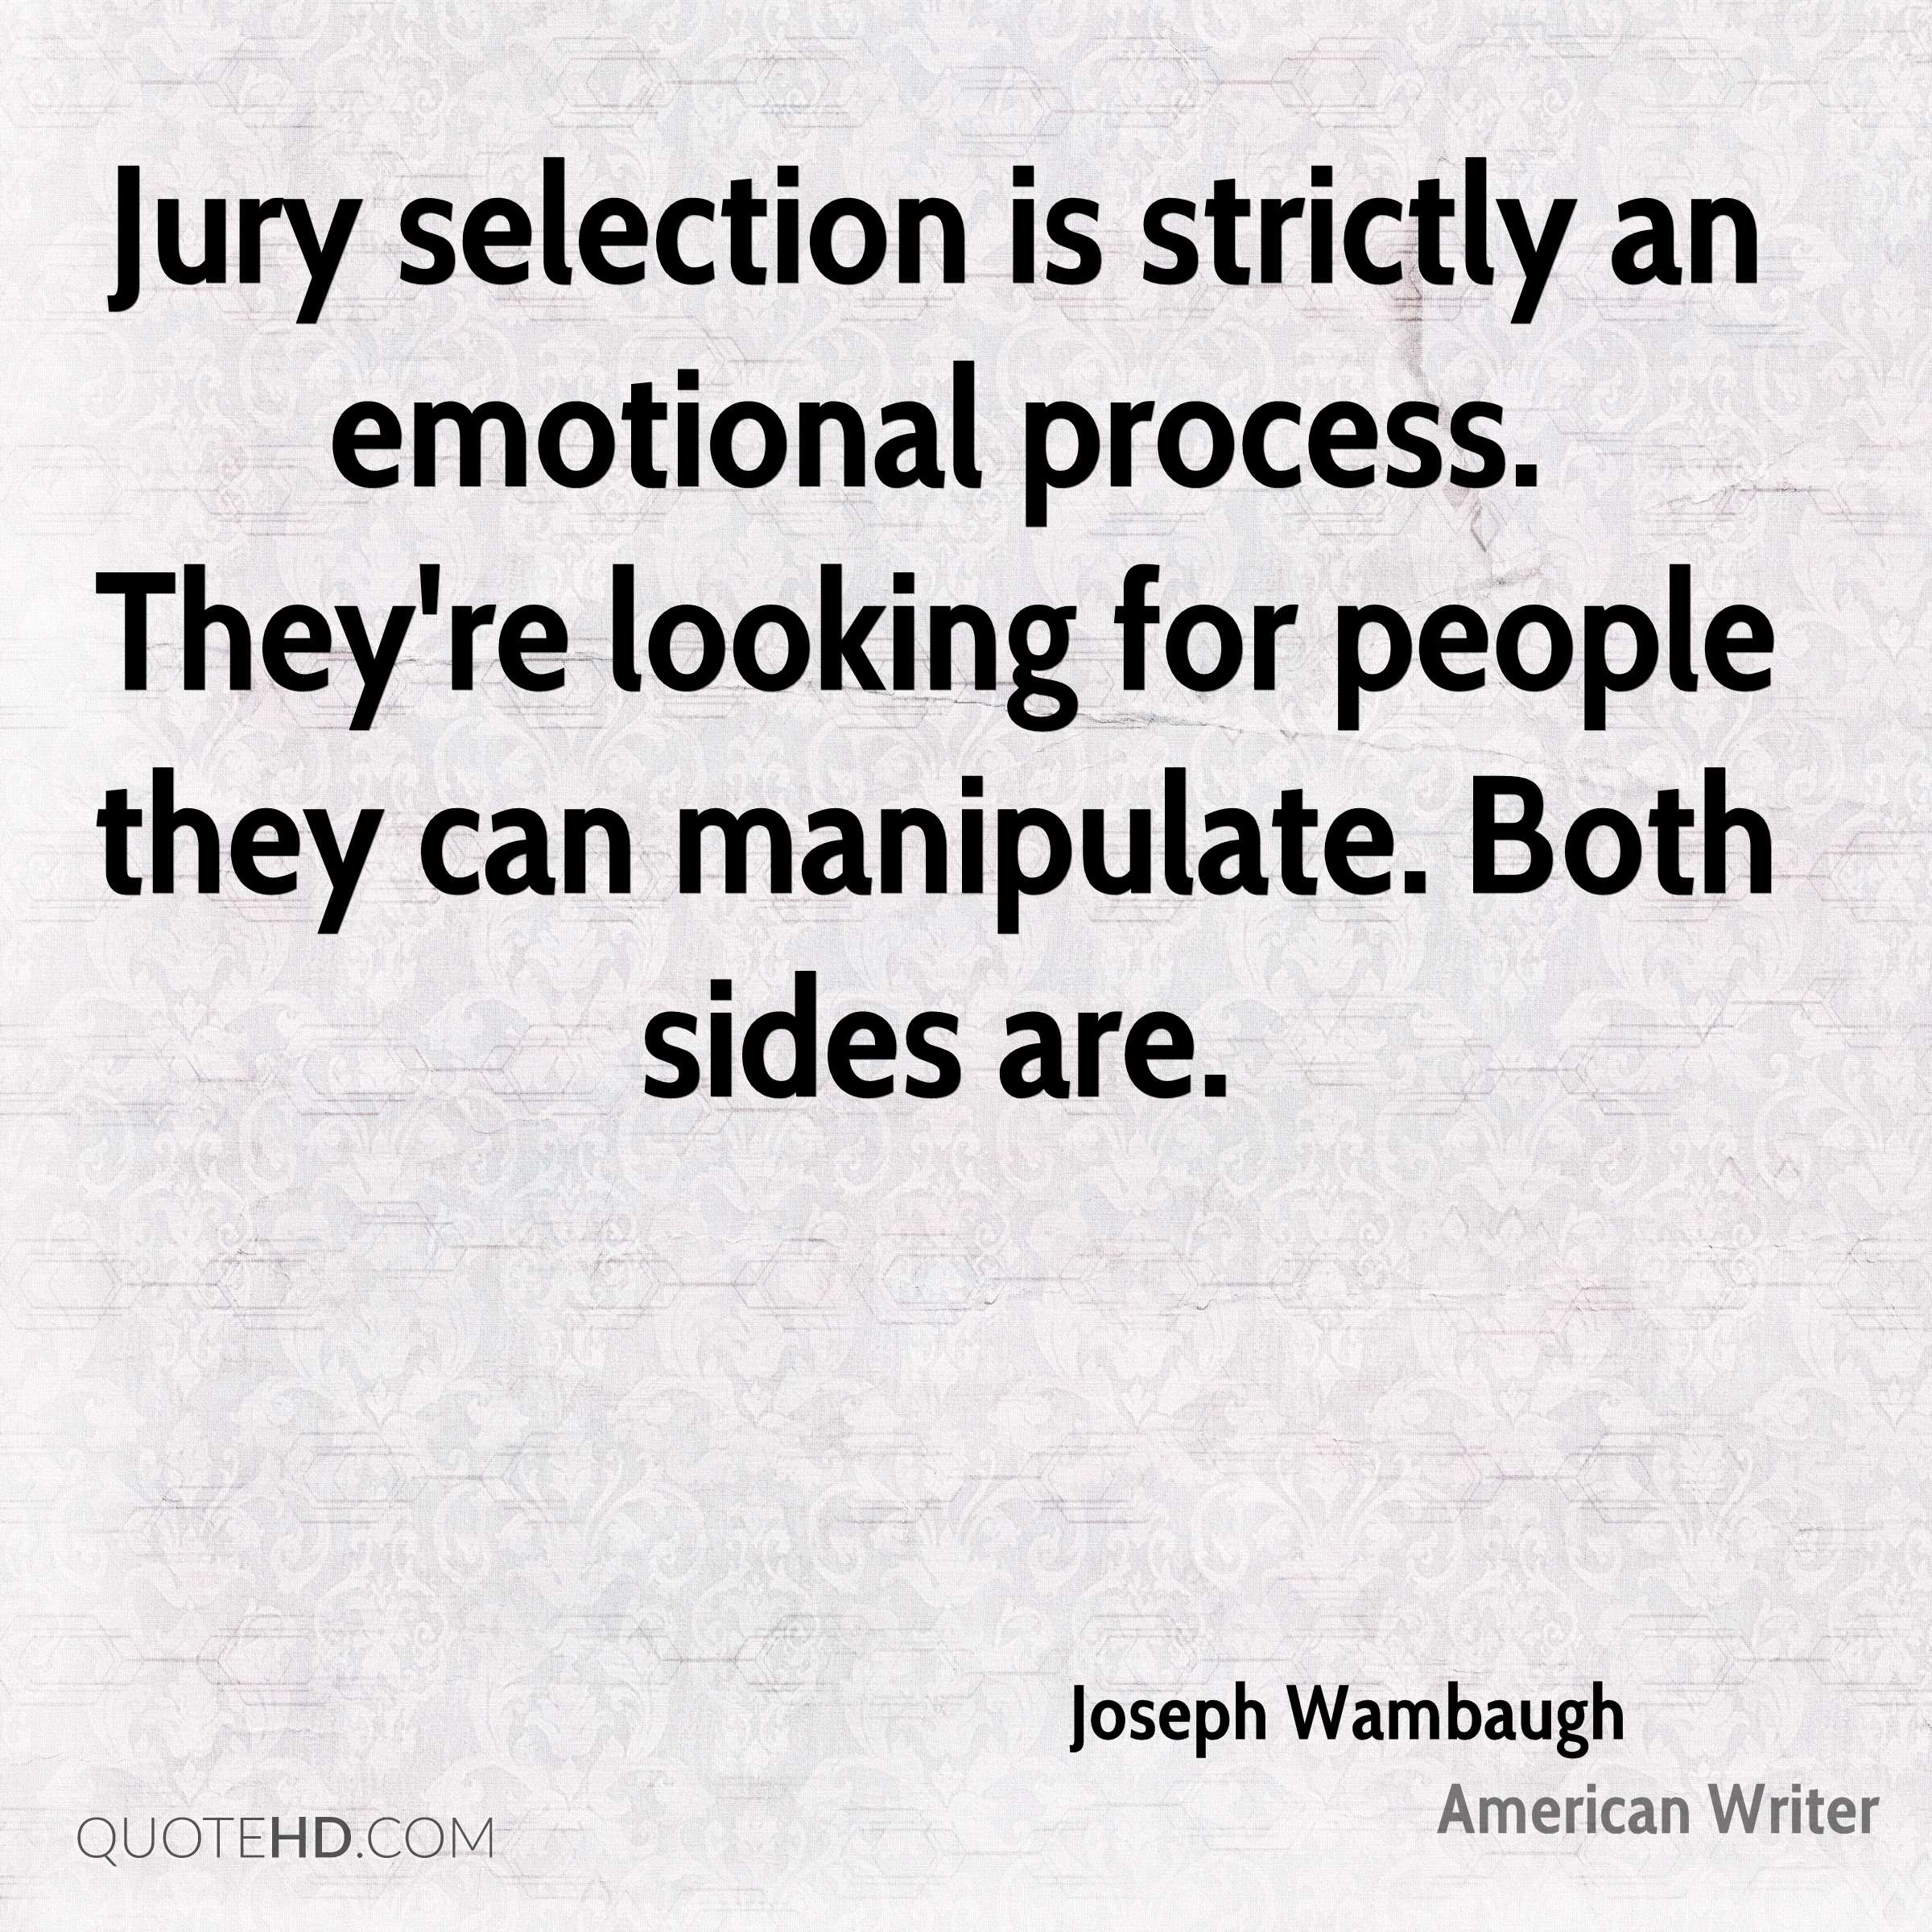 Jury selection is strictly an emotional process. They're looking for people they can manipulate. Both sides are.